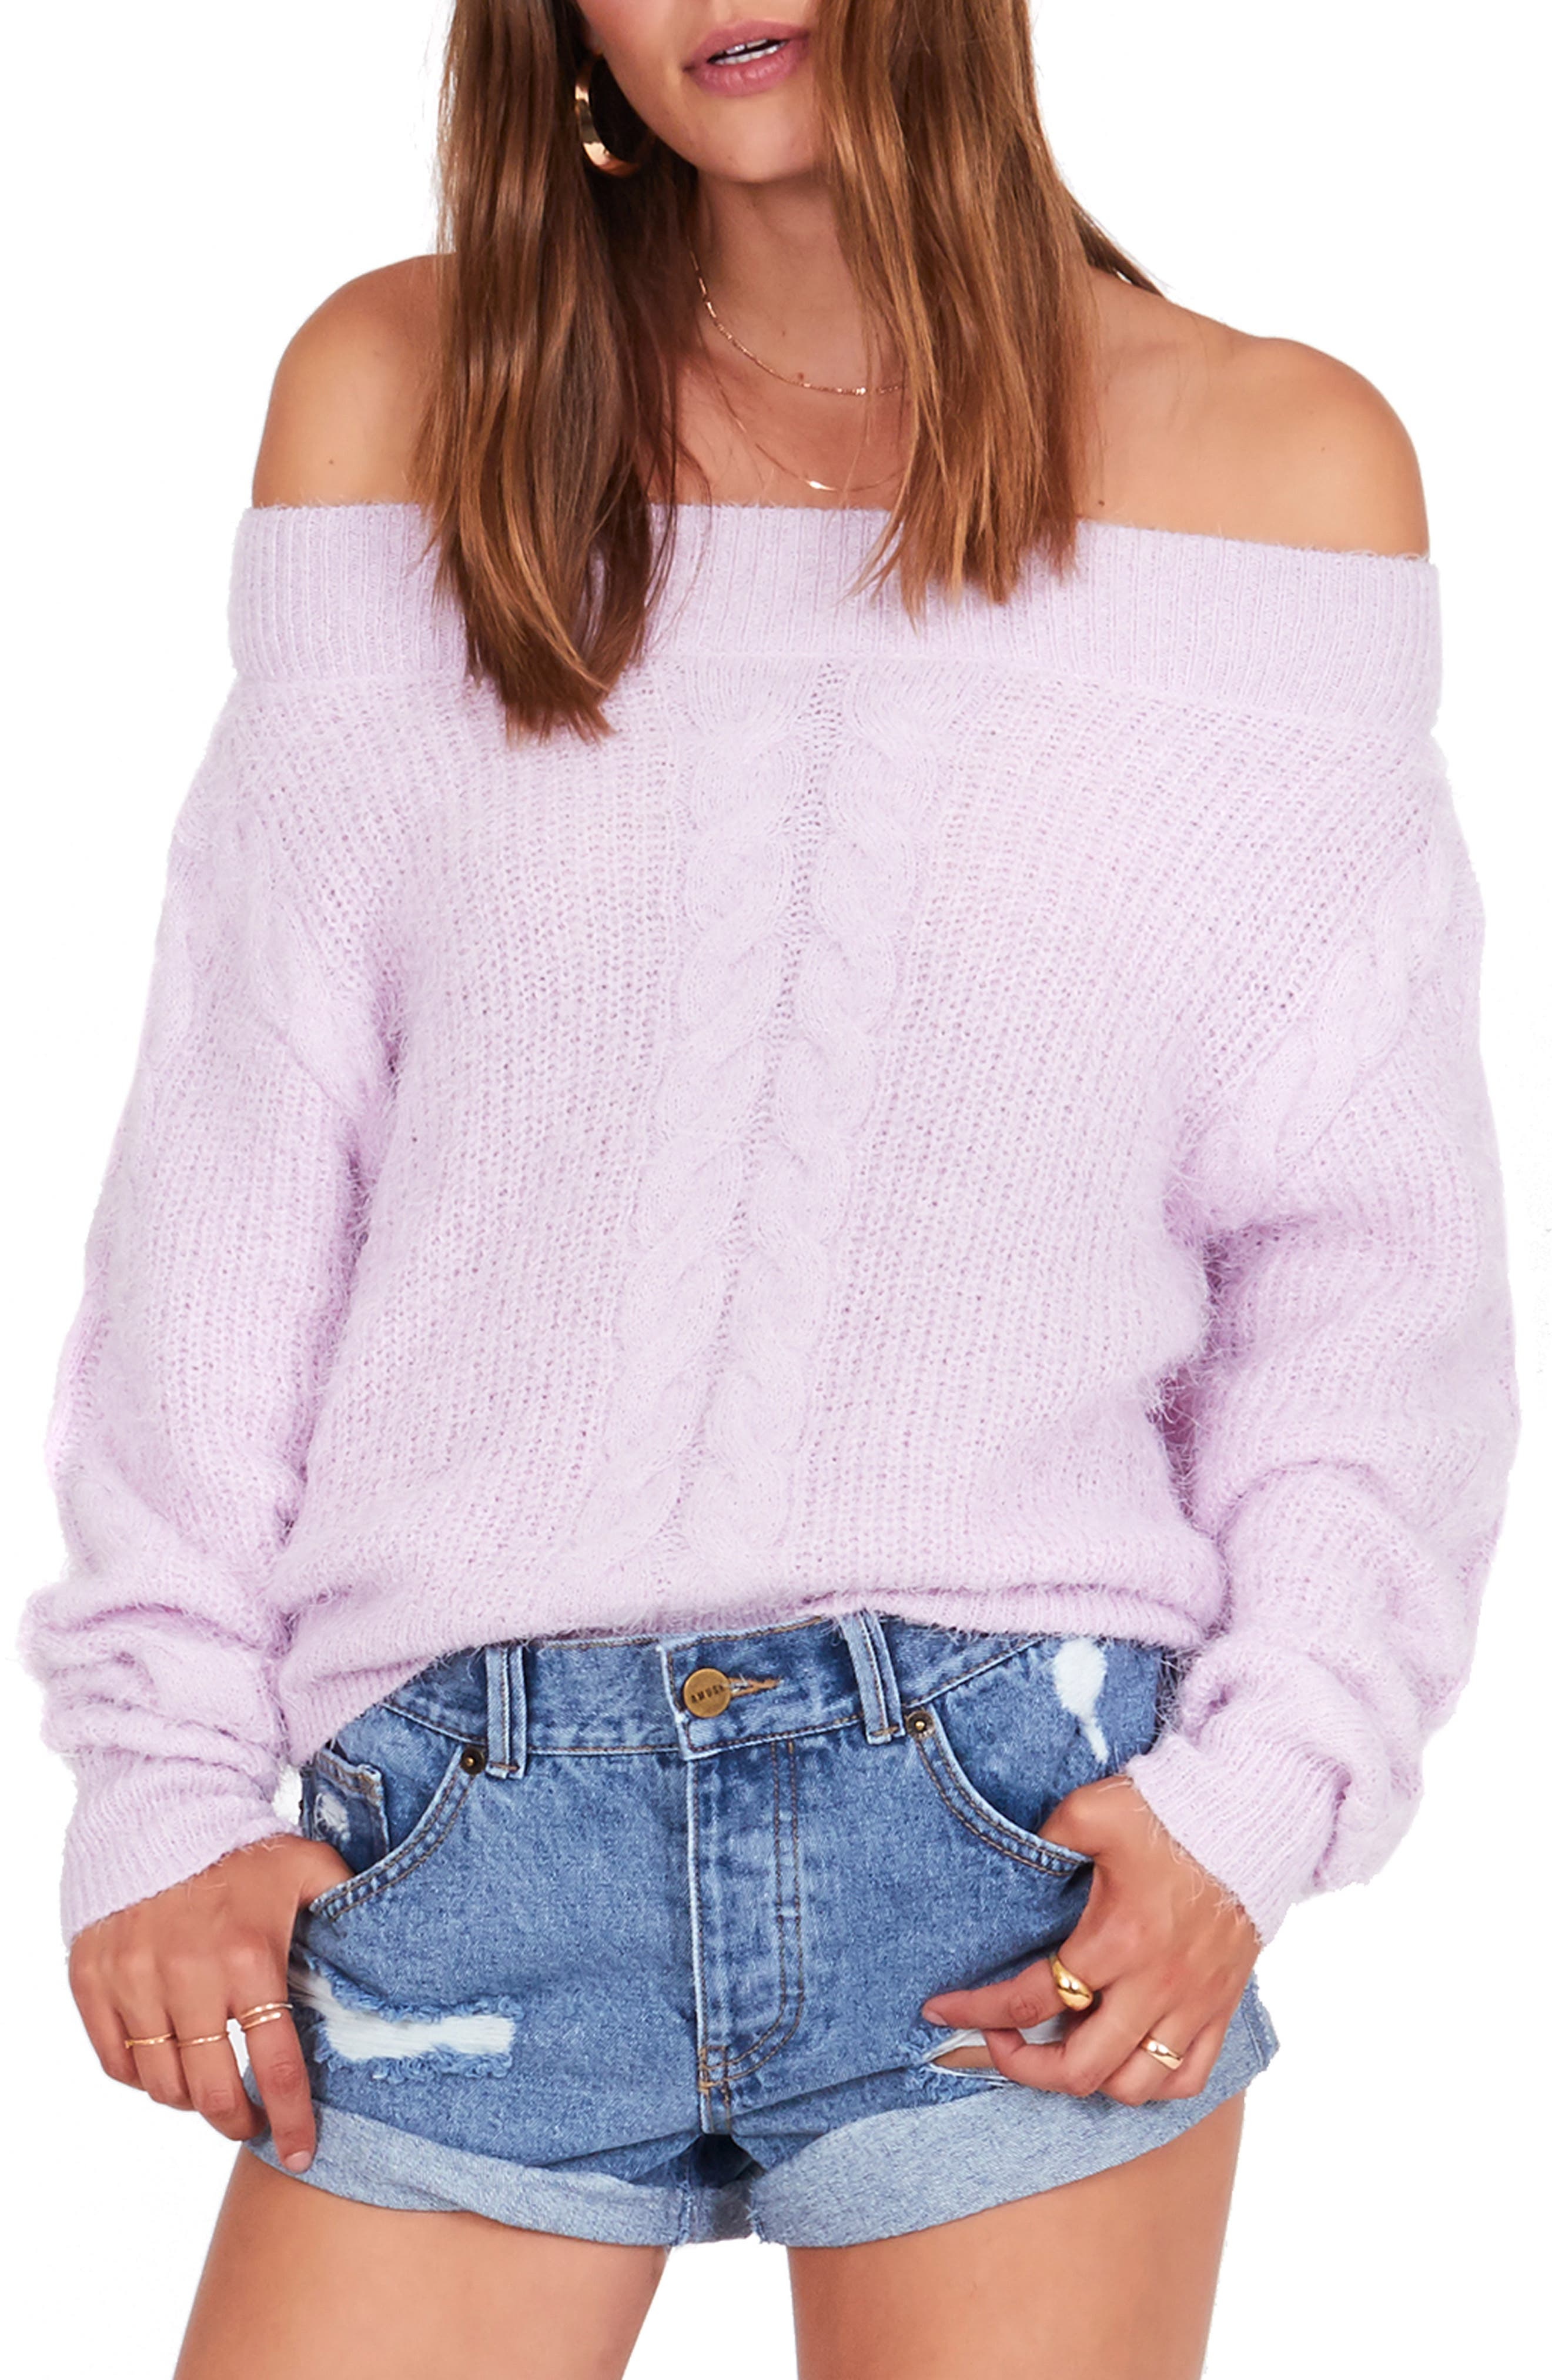 AMUSE SOCIETY Miraflores Off The Shoulder Sweater in Lilac